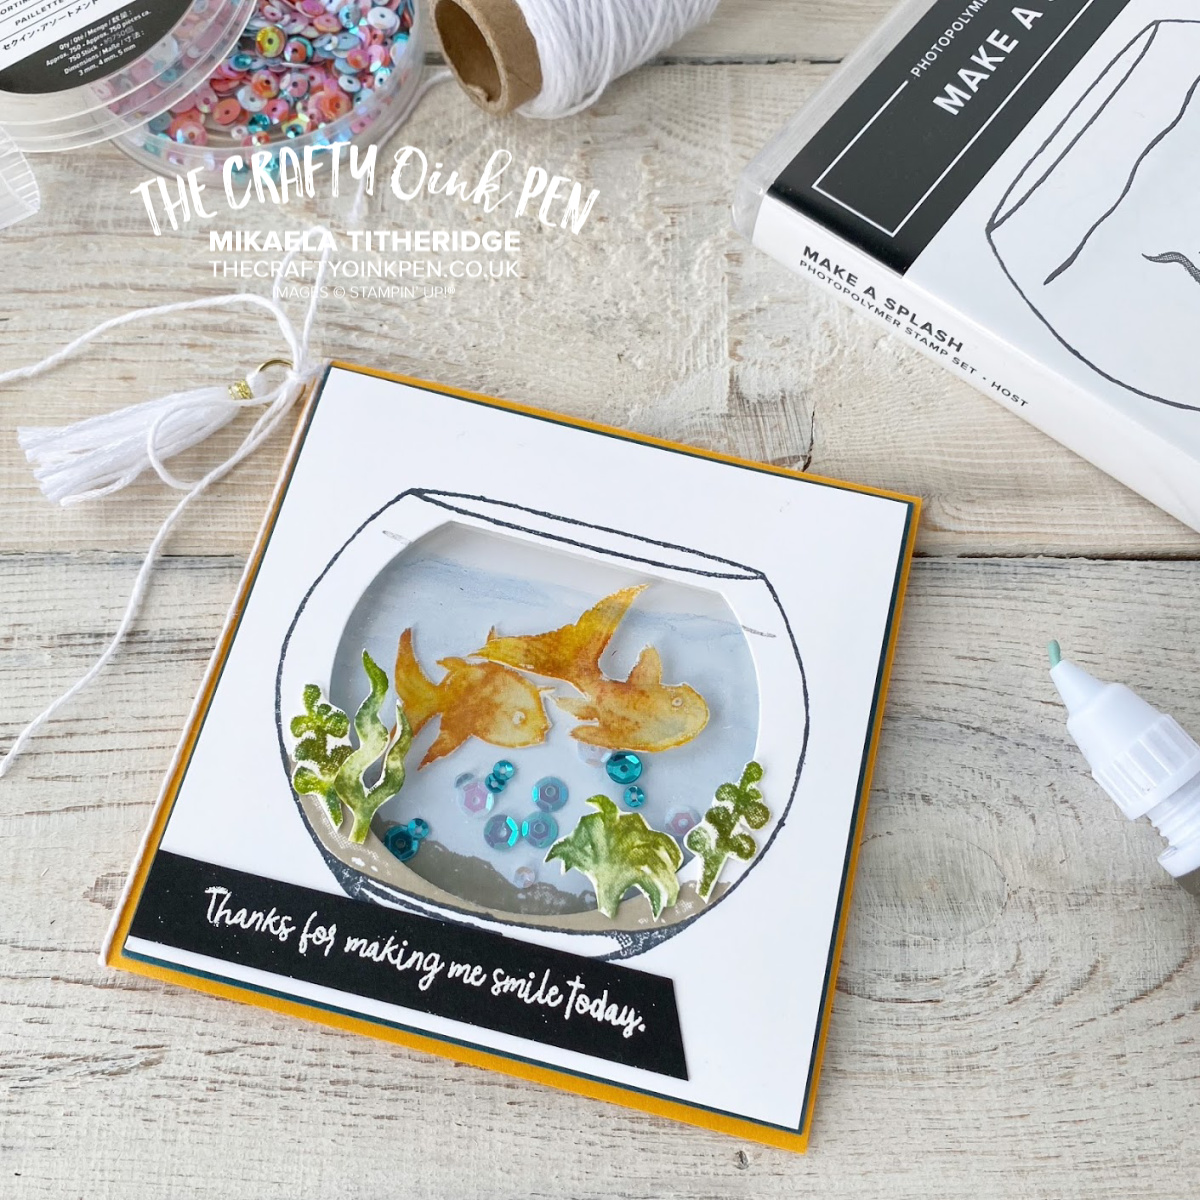 Make a Splash Host Set creates this Fish Bowl Shaker Cards by Mikaela Titheridge, UK Independent Stampin' Up! Demonstrator, The Crafty oINK Pen. Supplies available through my online store 24/7